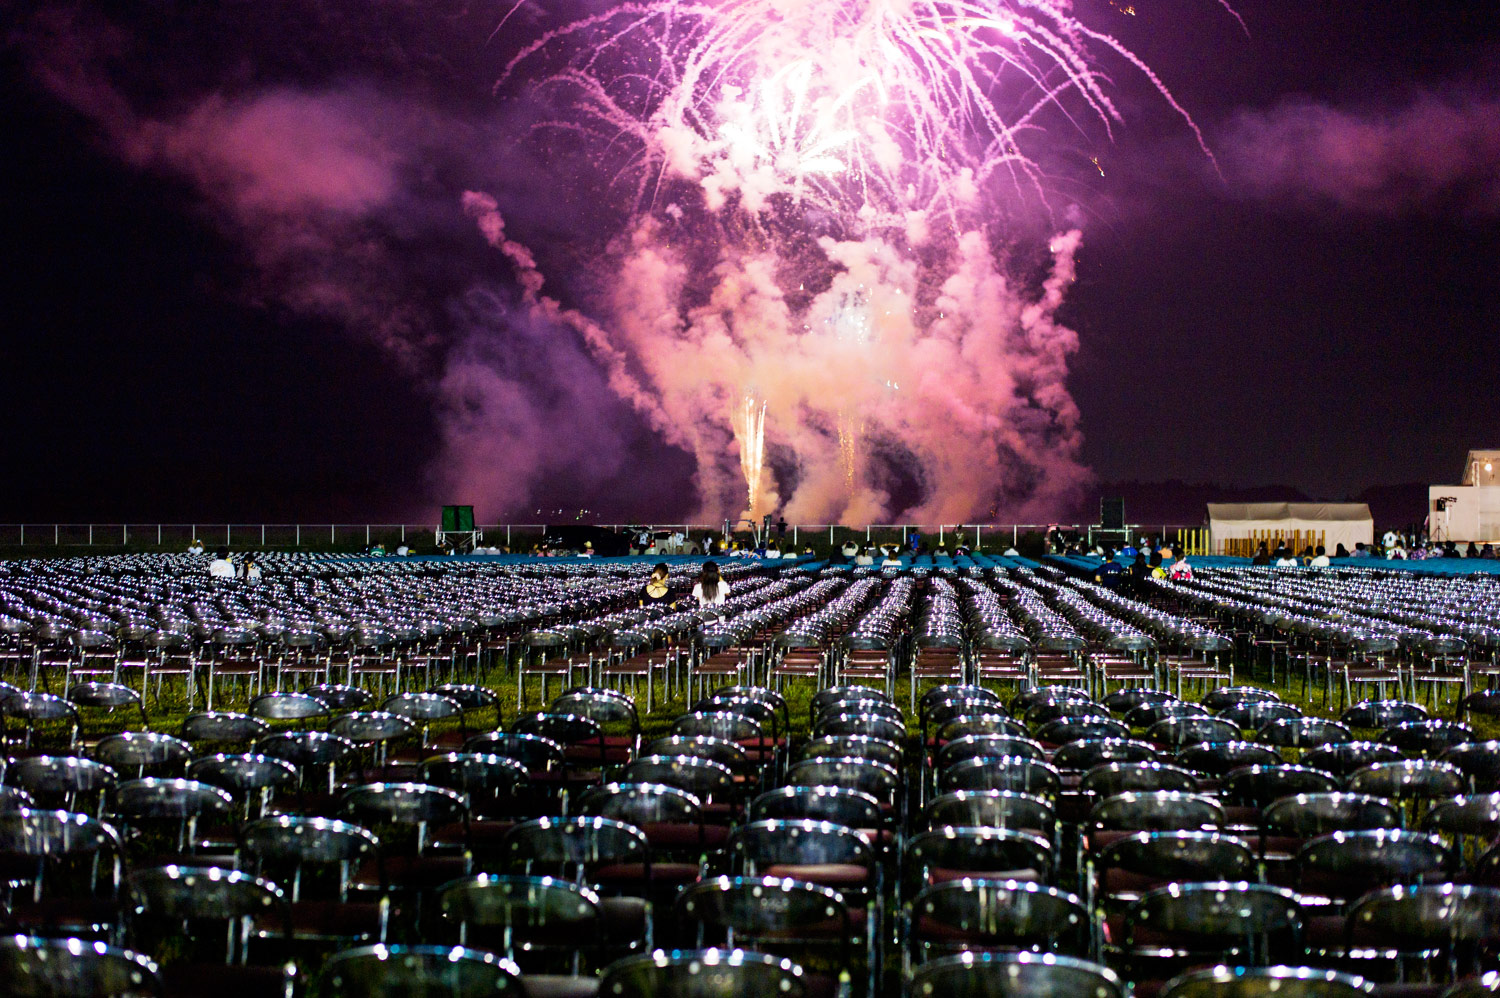 Fireworks brighten the sky over Soma, Japan, August 13, 2011. The display was to commemorate those who died after the massive earthquake and tsunami in March.